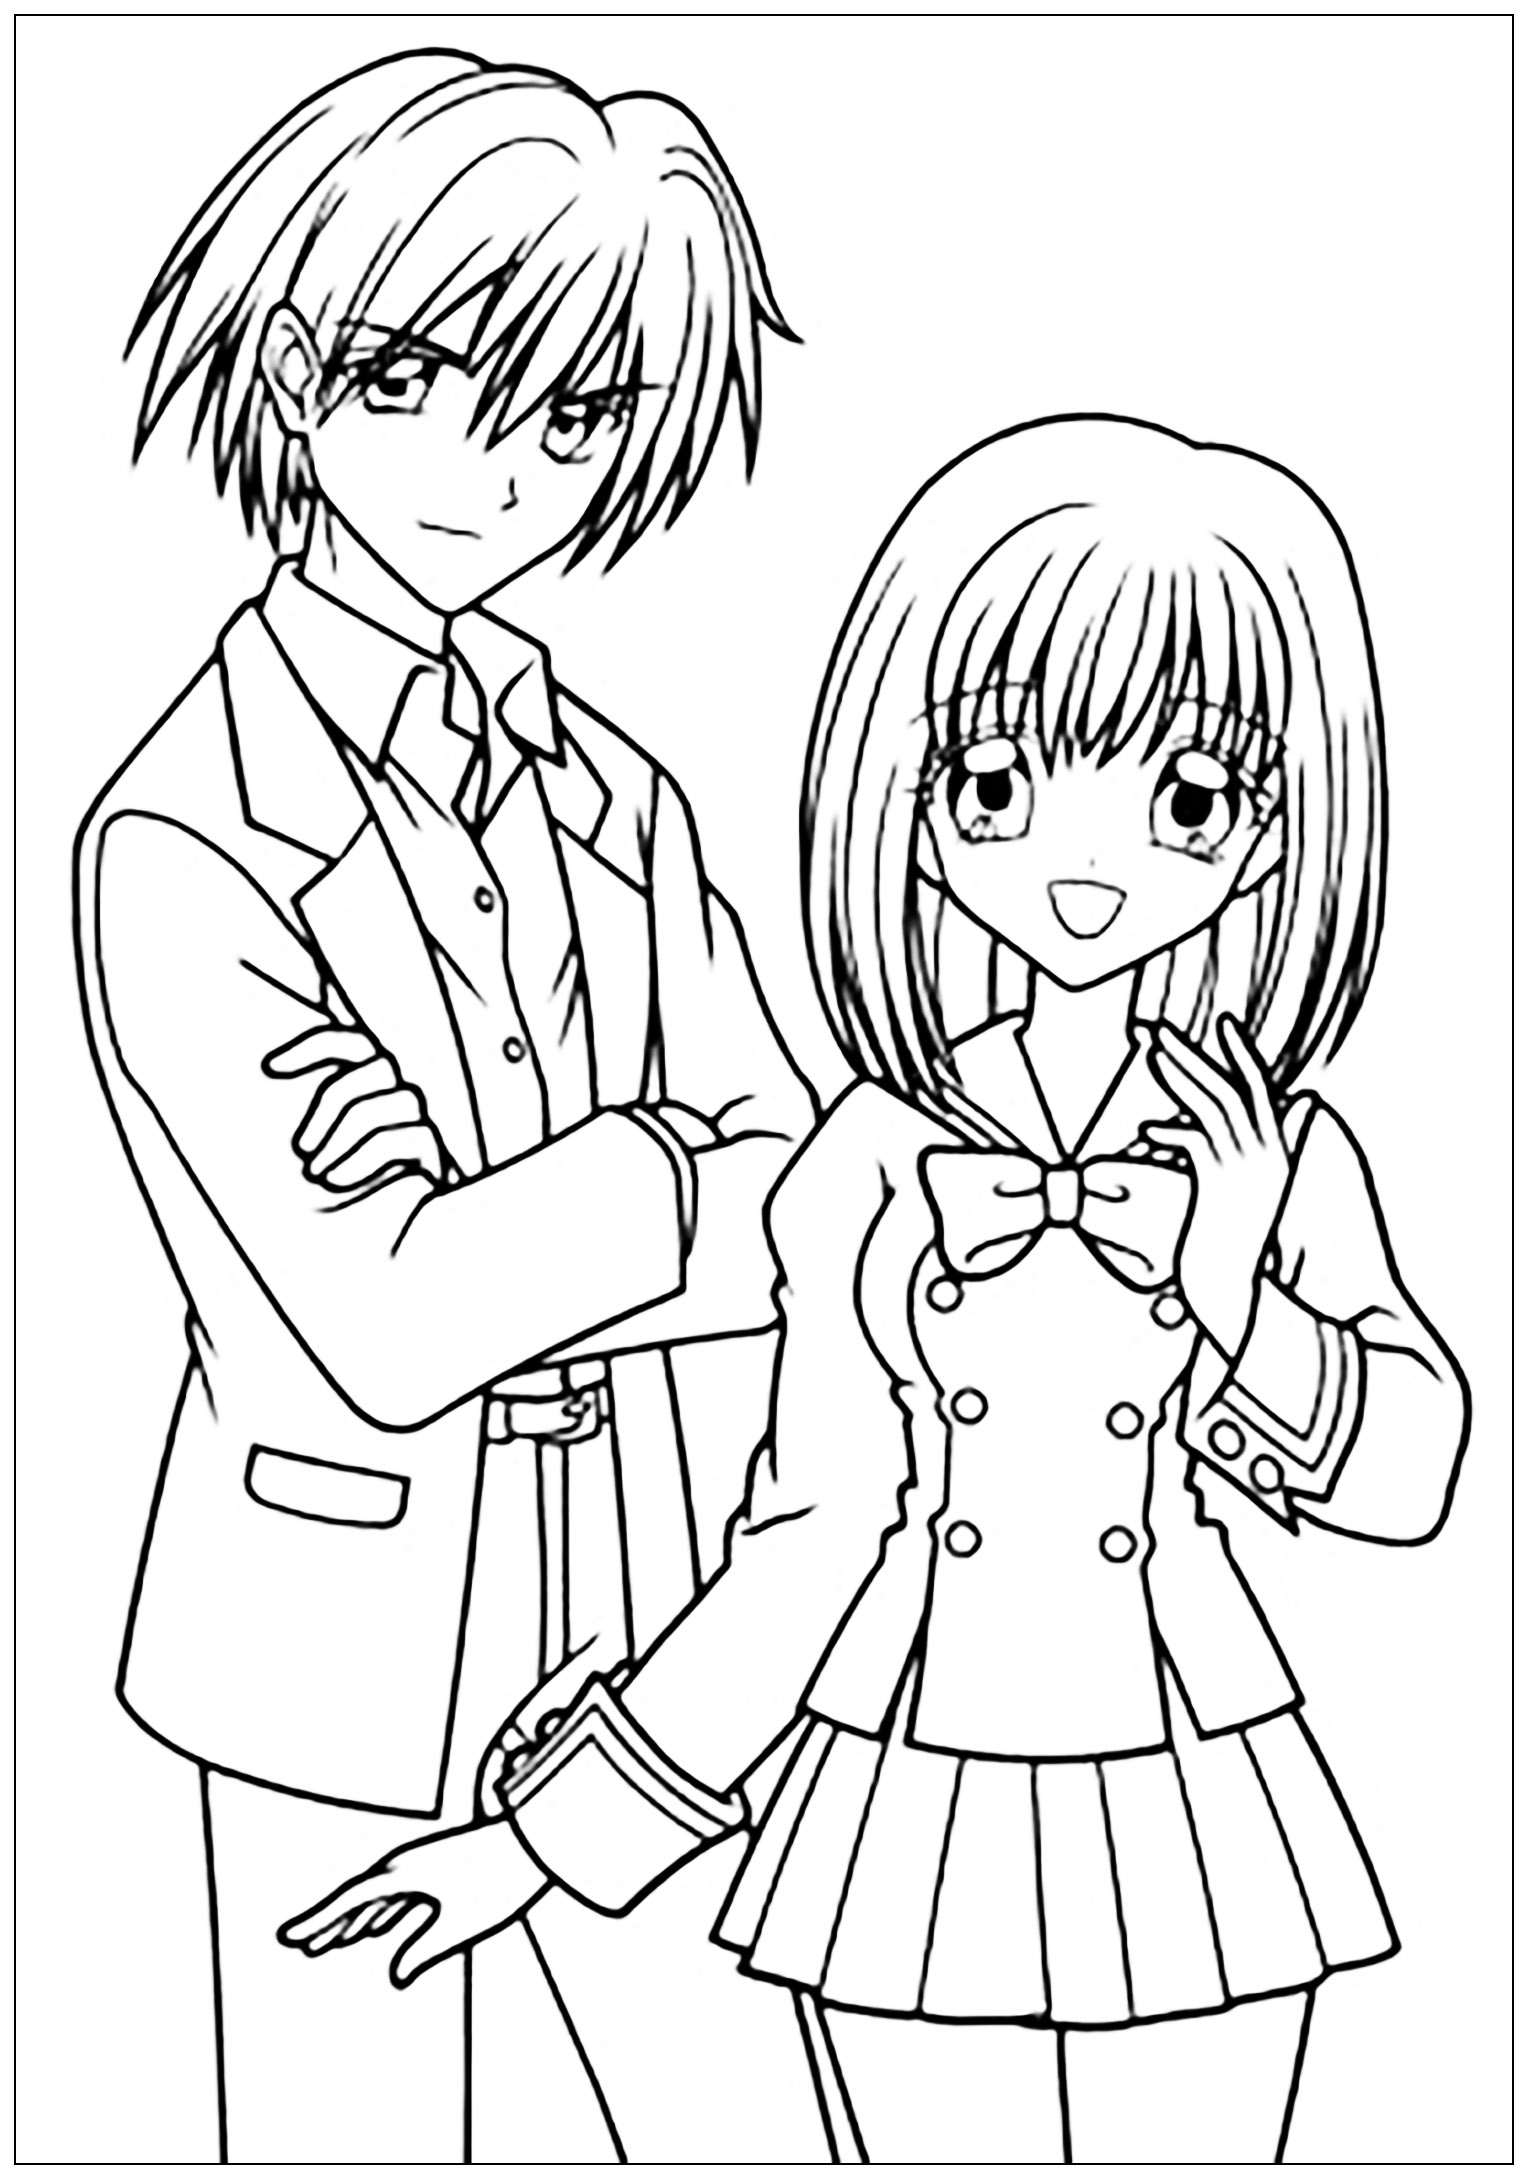 school girl coloring pages anime school girl coloring pages at getcoloringscom coloring pages girl school